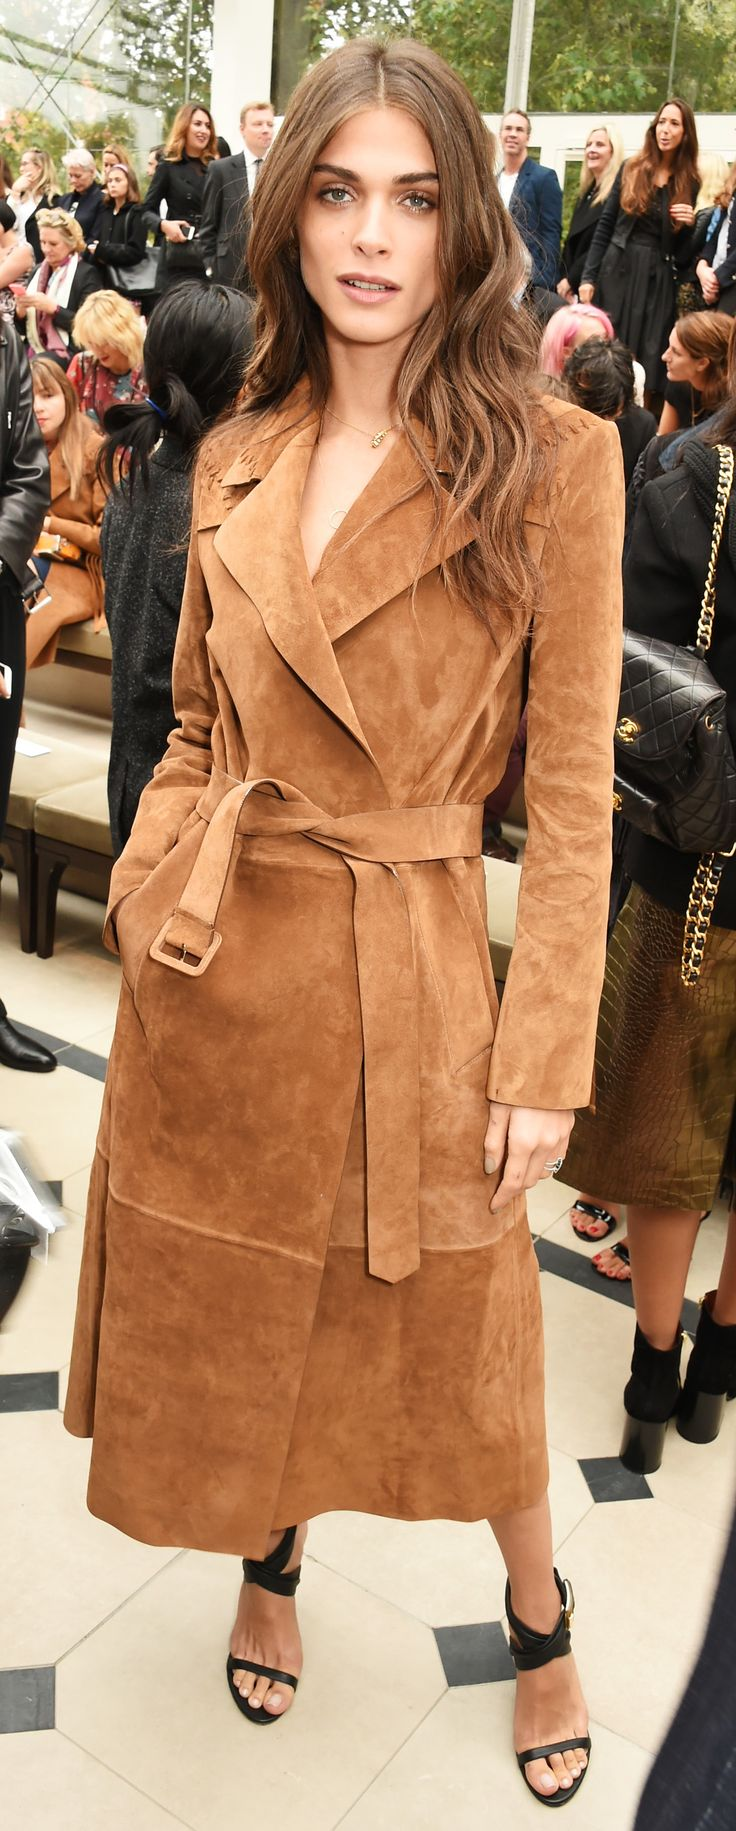 Elisa Sednaoui wearing a suede Burberry trench coat inside the S/S16 show space